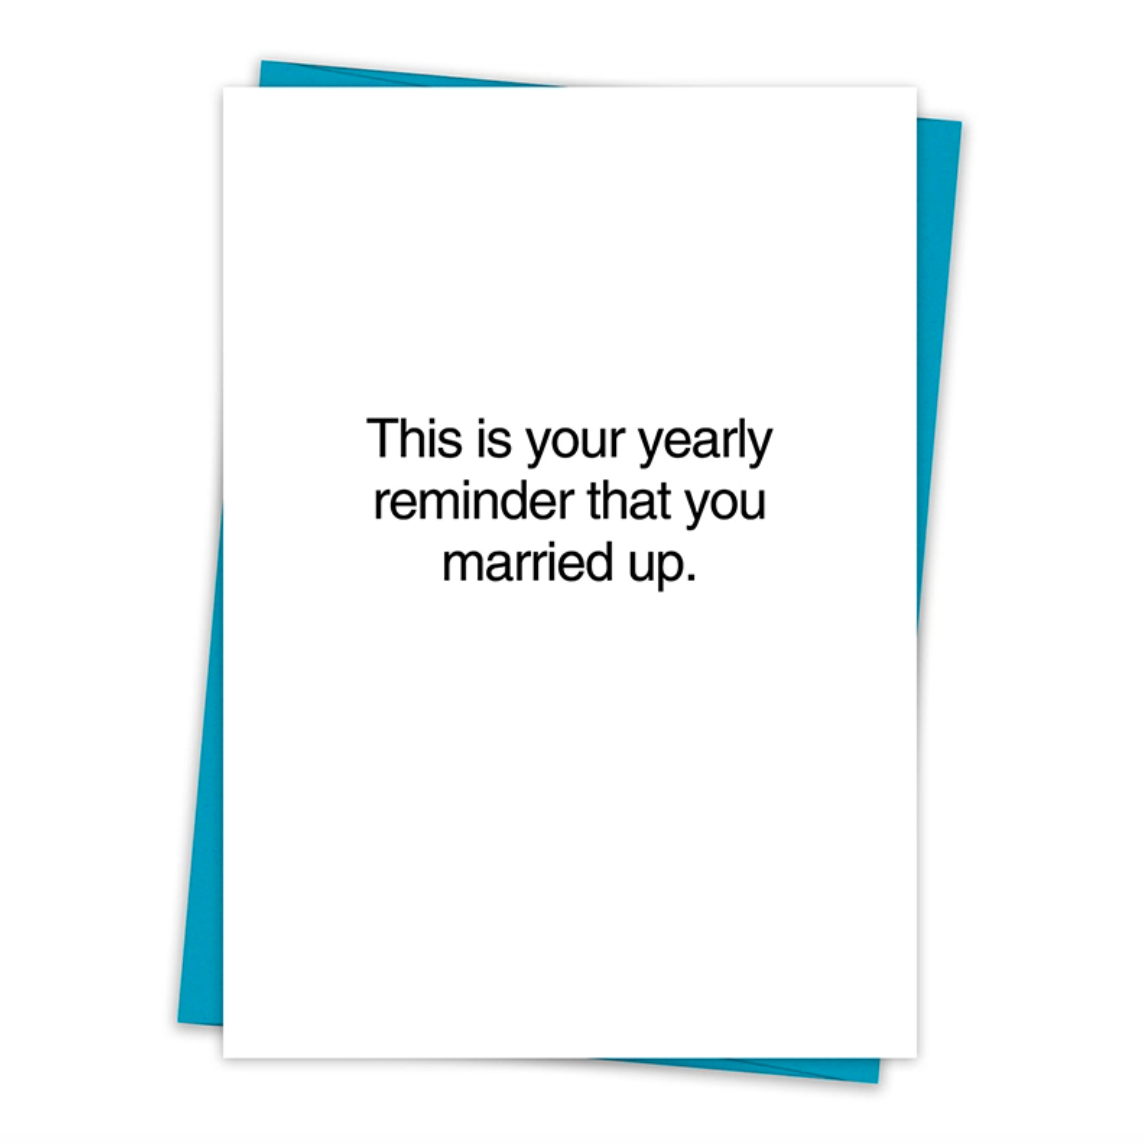 TA Card married up